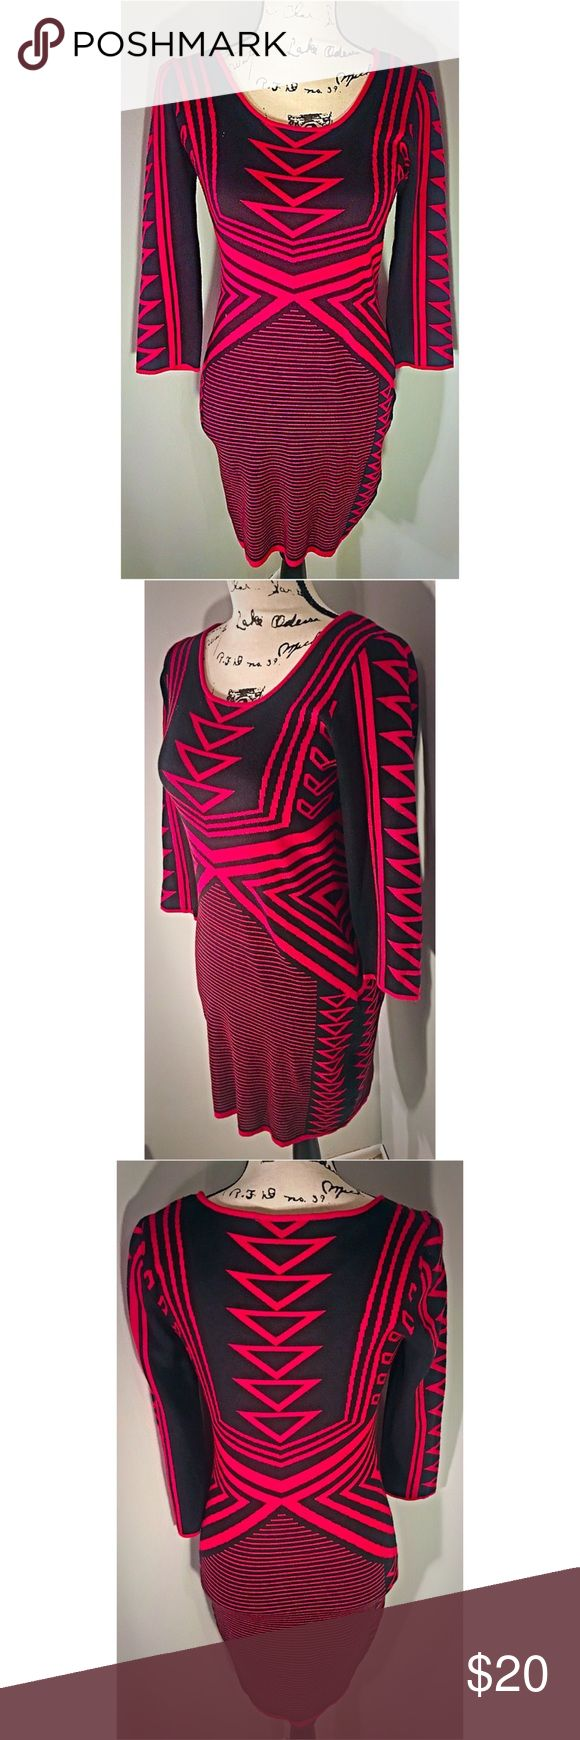 ❤️Sexy Tribal Sweater Dress | Size Large ❤️ Beautiful like 🆕 tribal print sweater dress. Brand: Derek Heart ❤️Size Large. This dress is super soft and sexy!  Make this ☝🏾️treasure yours today ☺️. Don't be scared  to make an offer, you never know unless you try. Bundle multiple items for the best savings. Pay one low price for shipping 🎁! Thanks for stepping into my closet  😘 Derek Heart Dresses